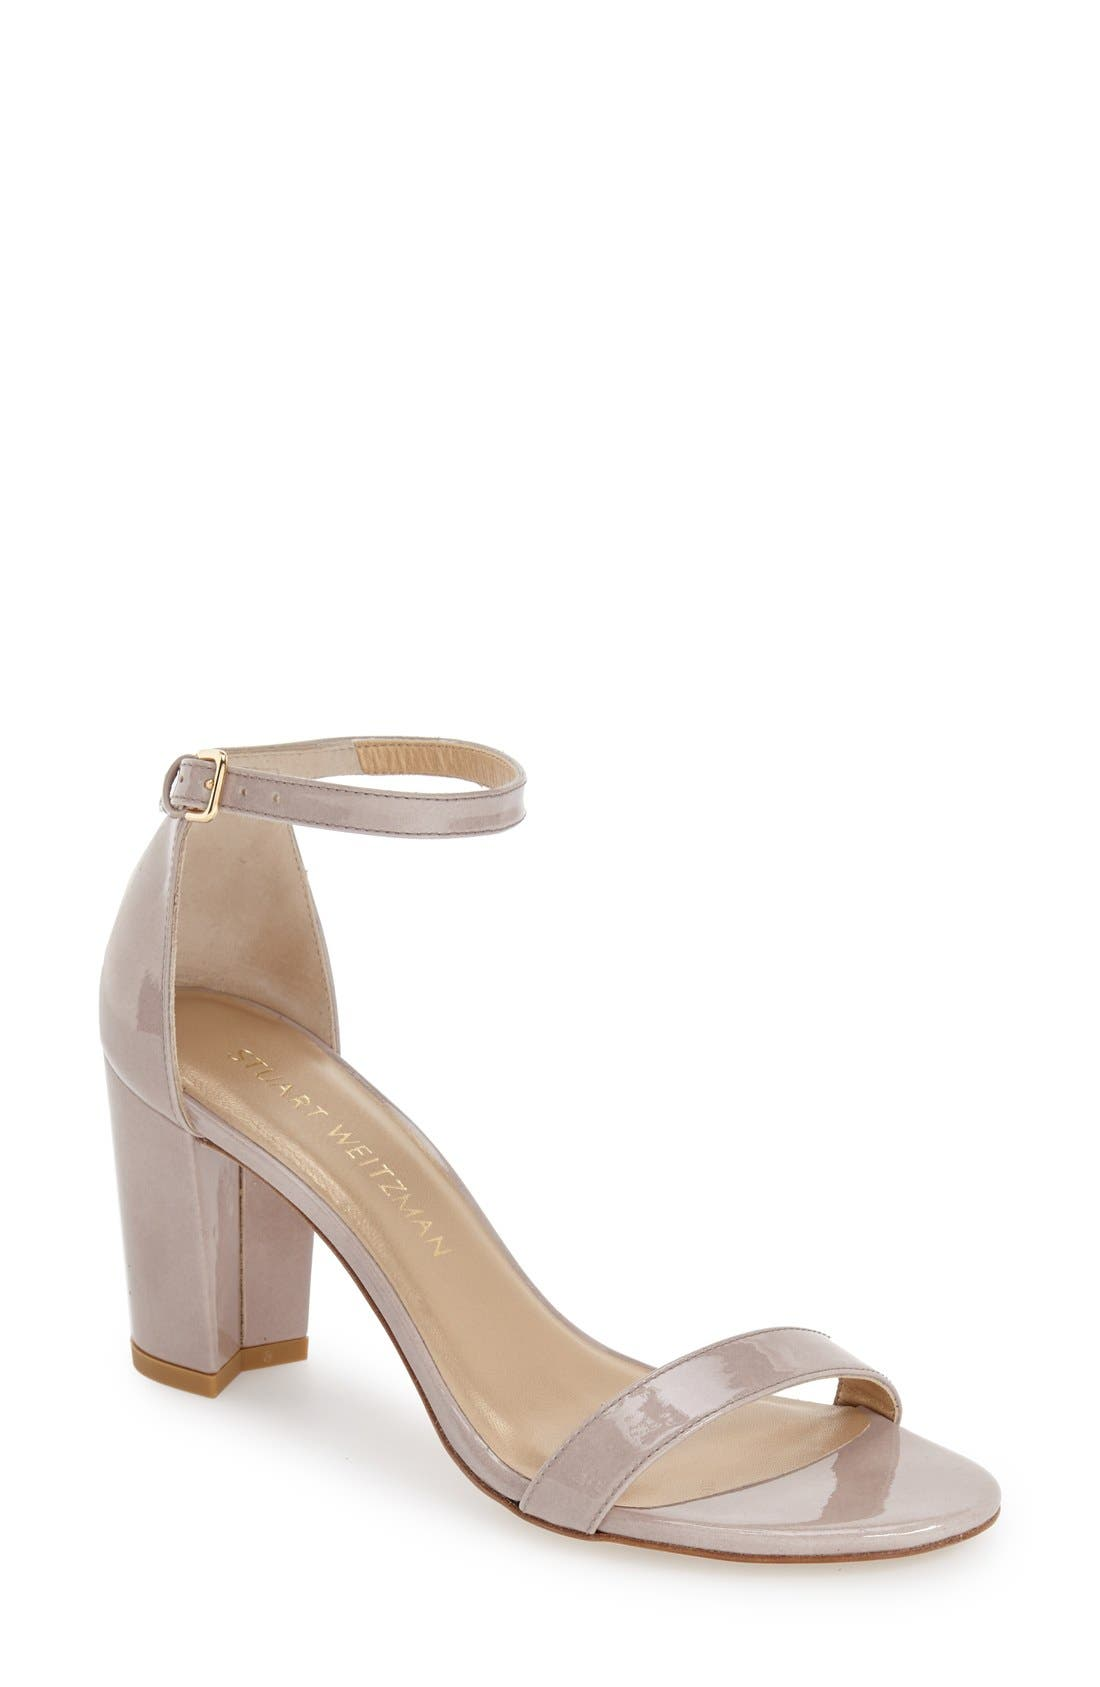 NearlyNude Ankle Strap Sandal,                             Main thumbnail 19, color,